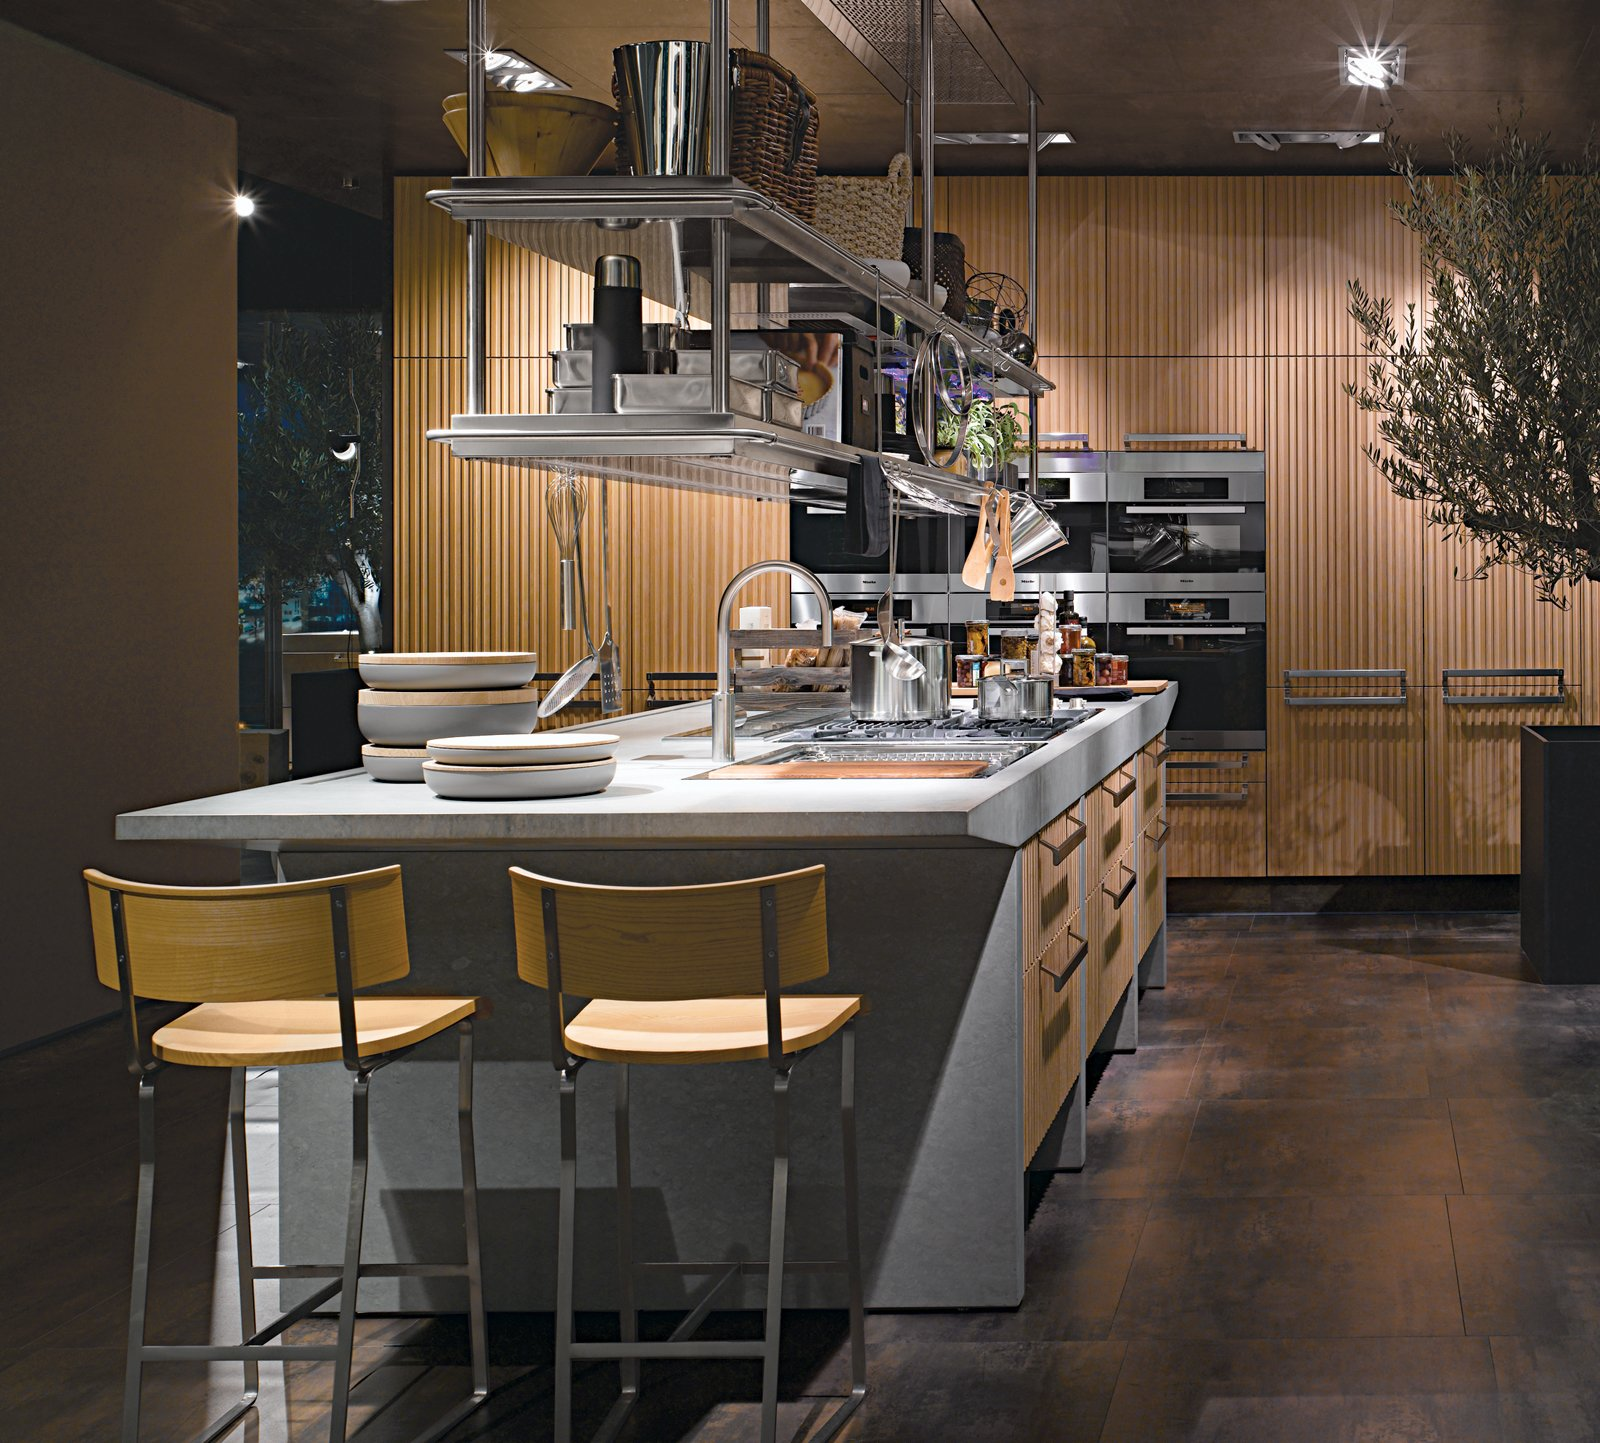 Arclinea's Lignum and Lapis kitchen system features green materials, professional-grade appliances, and advanced technology like a miniature greenhouse for growing herbs indoors and a retractable glass hood over the cooktop. An Introduction to Kitchen Design - Photo 5 of 7